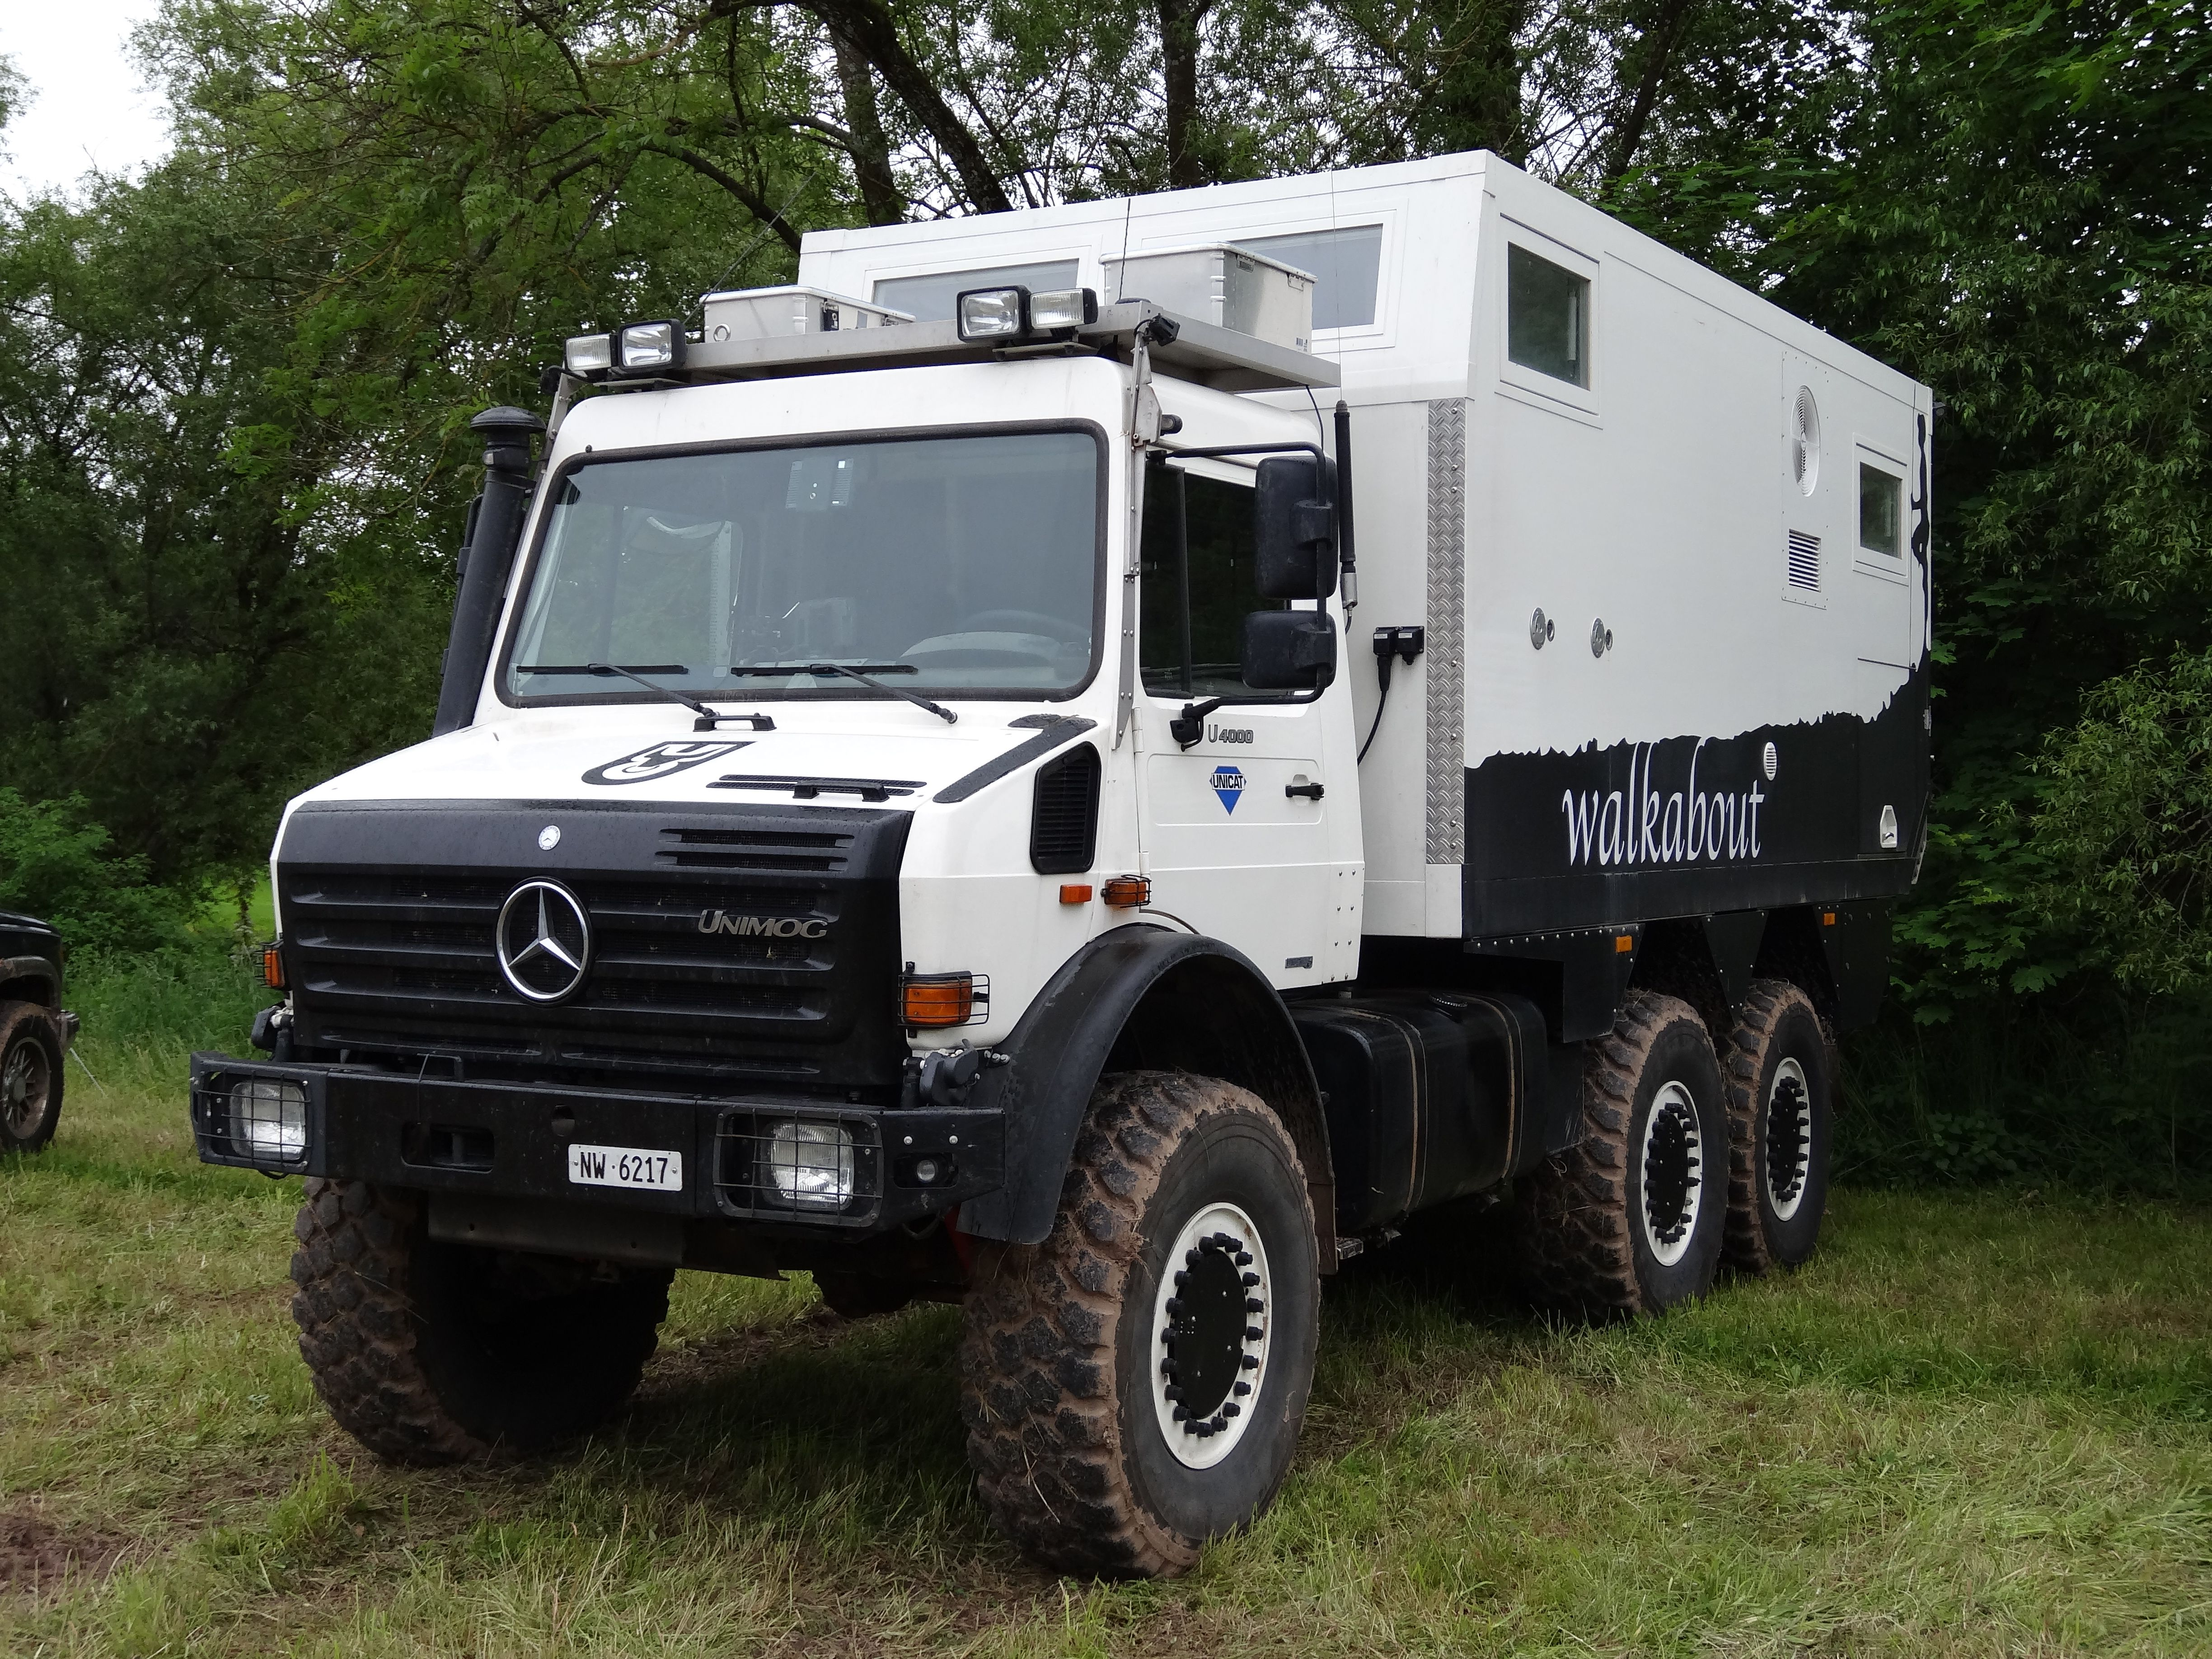 unimog wikipedia the free encyclopedia vehicles. Black Bedroom Furniture Sets. Home Design Ideas